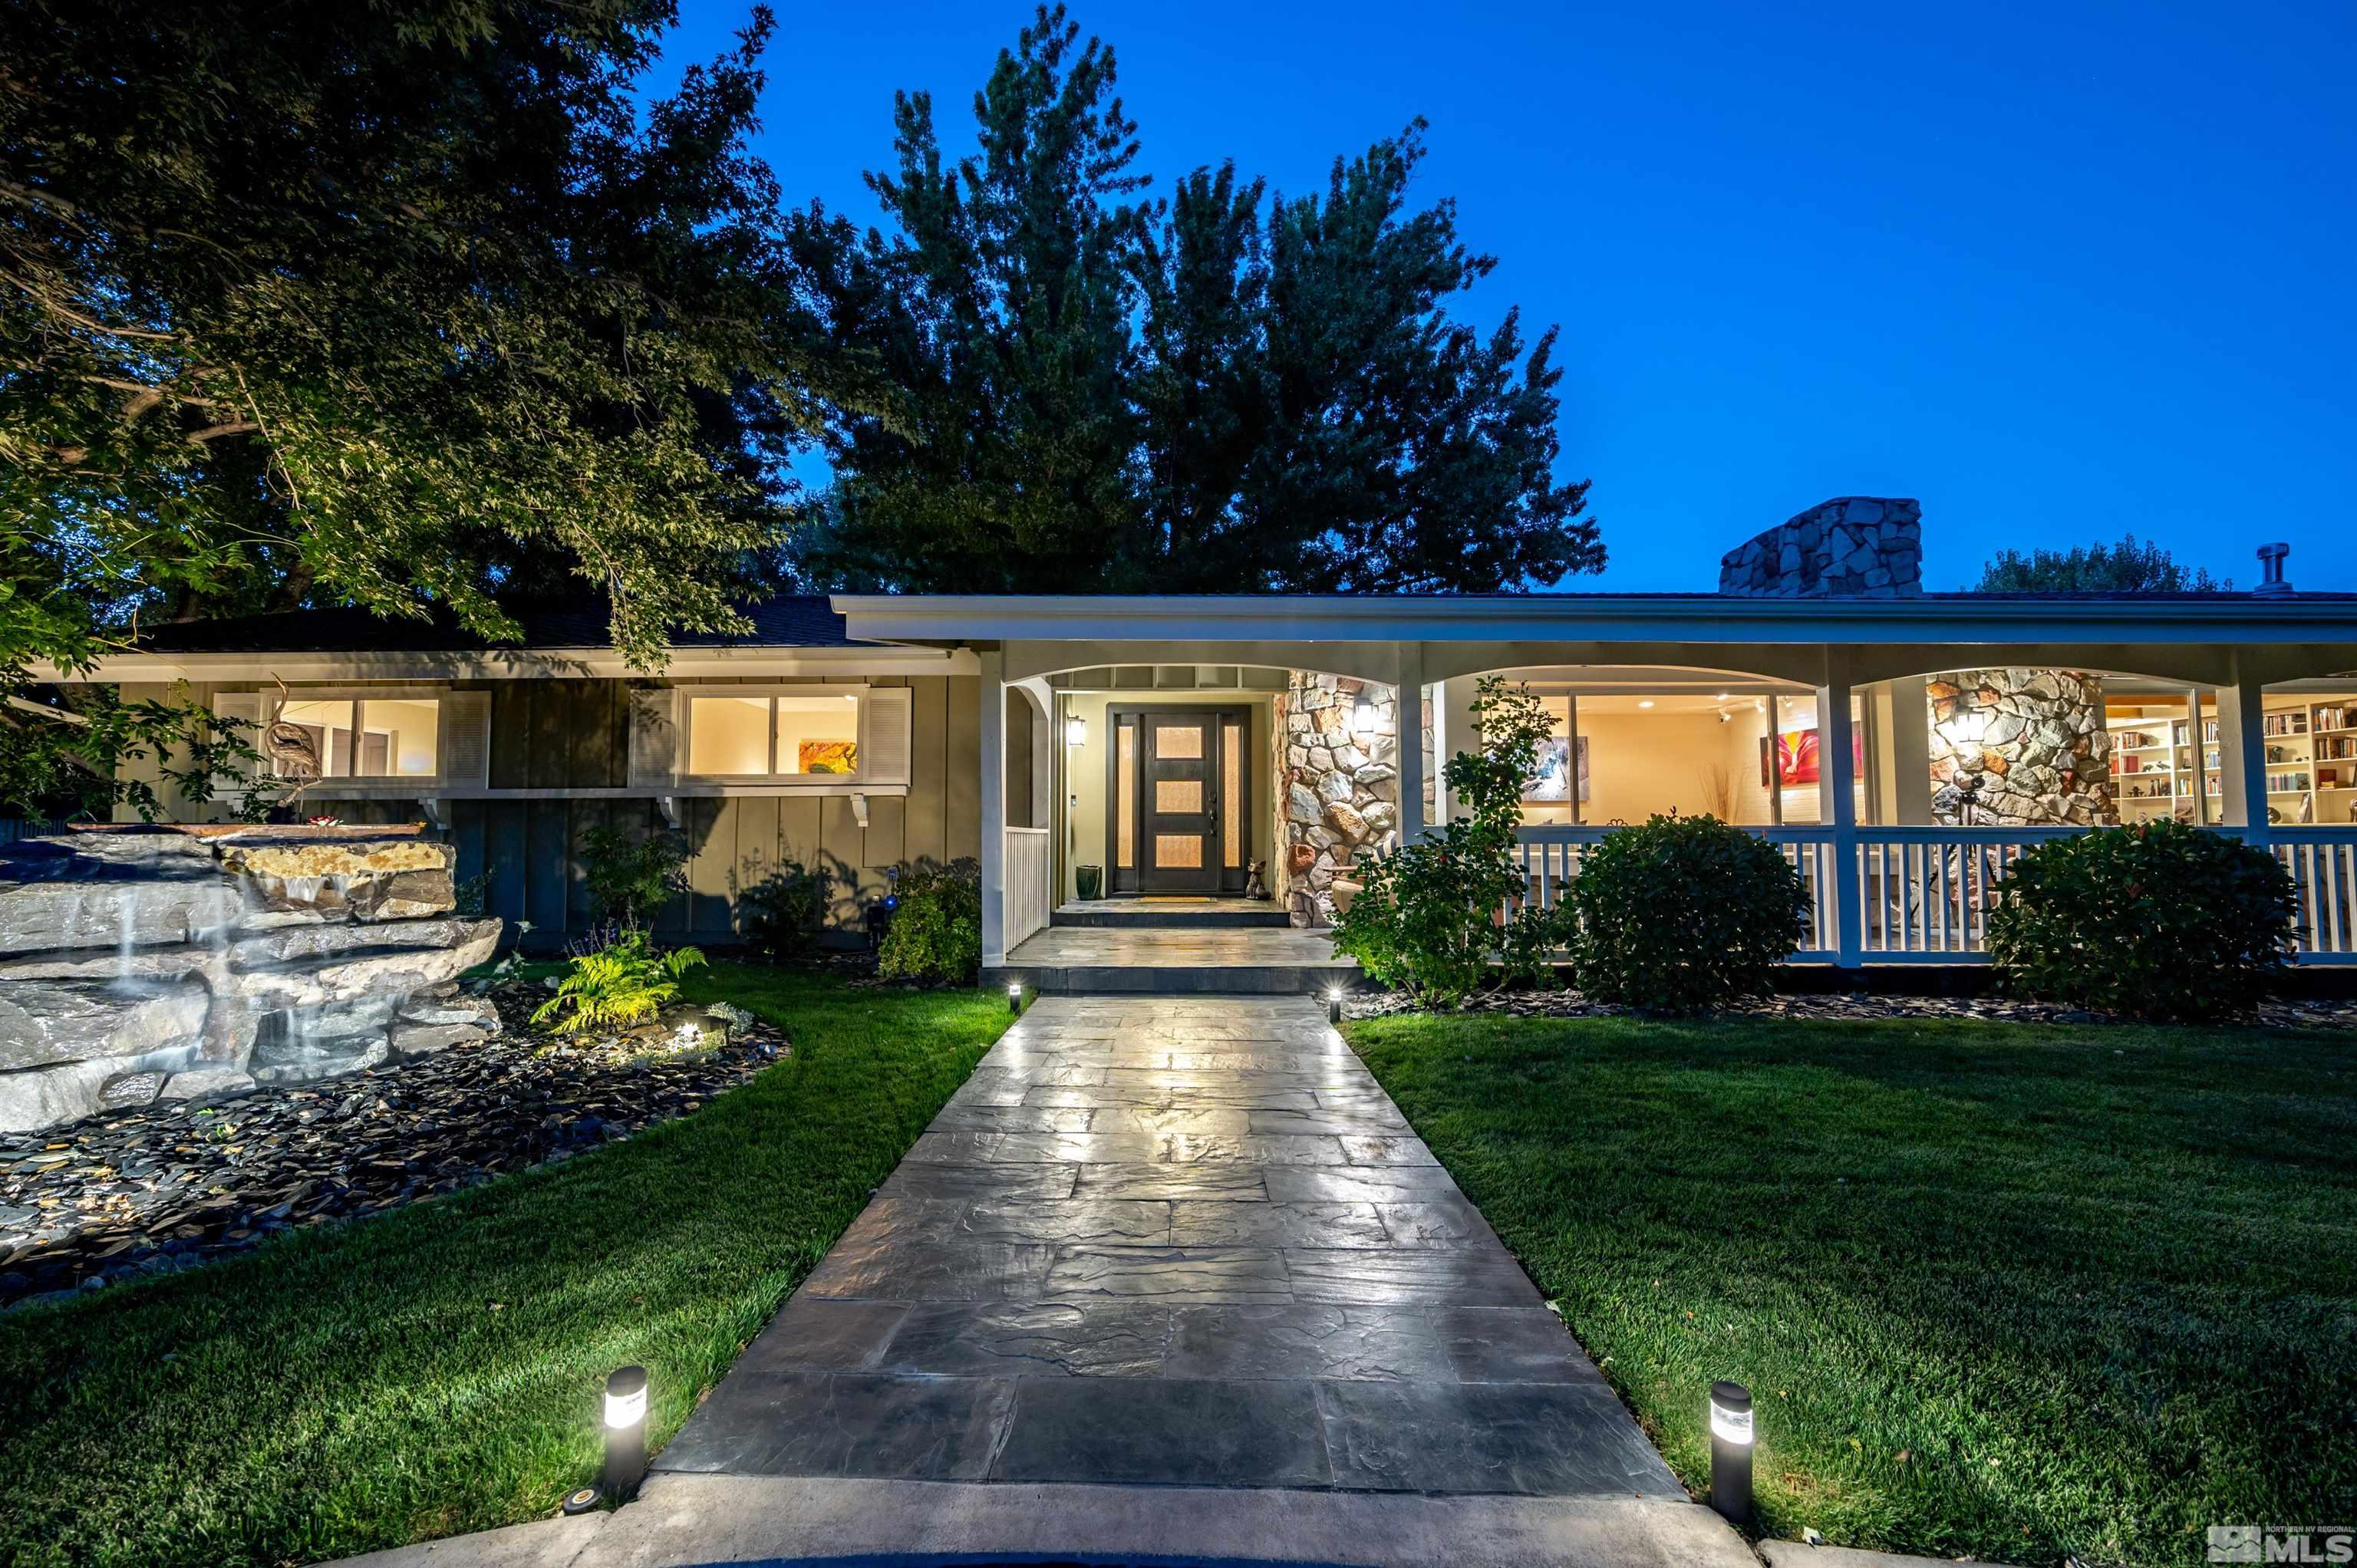 Image for 1185 Sweetwater, Reno, NV 89509-5250